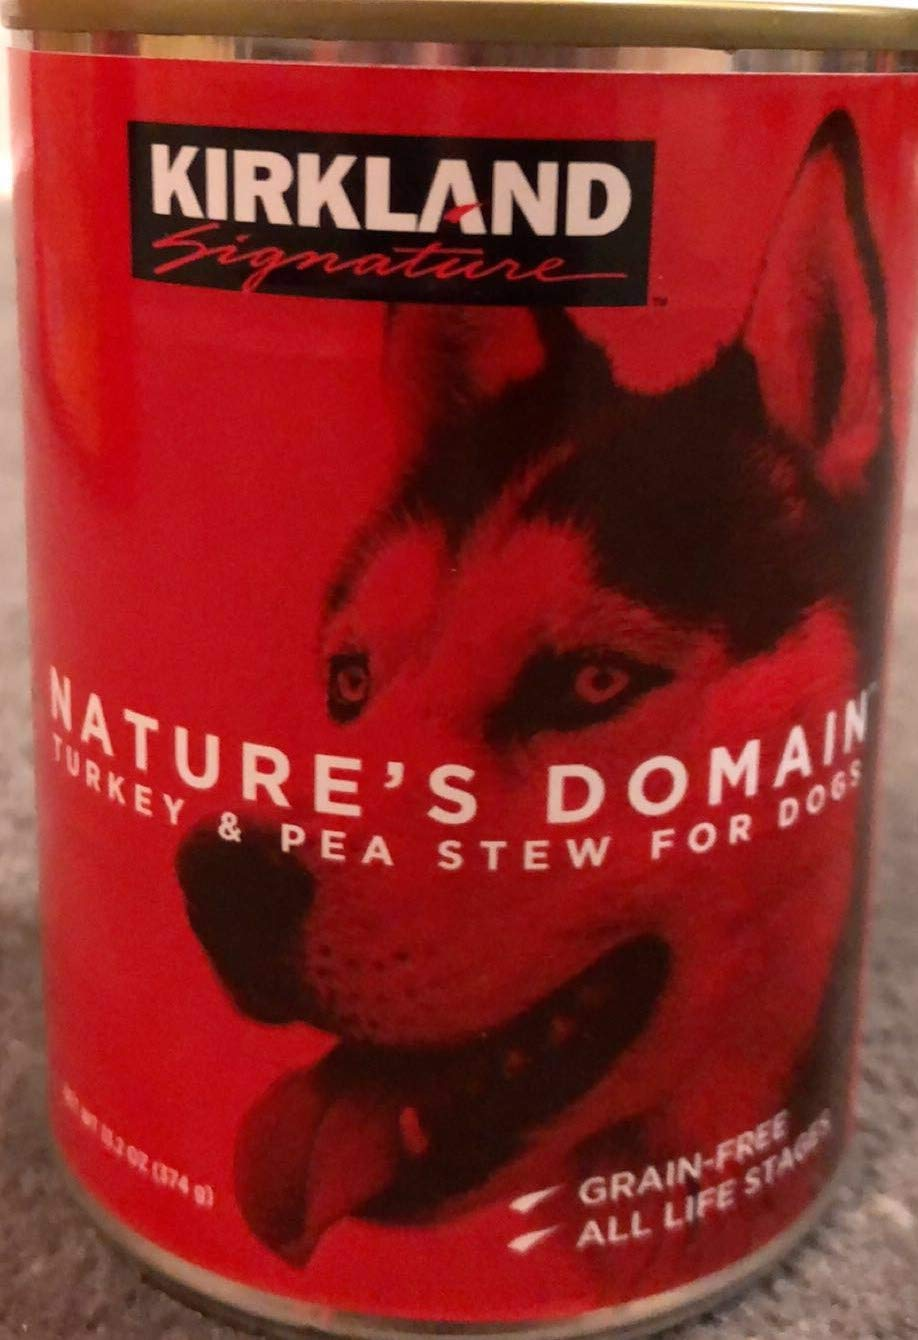 24 (13.2 Oz Each) Cans Nature's Domain Kirkland Turkey and Pea Stew Dog Food by Kirkland Signature